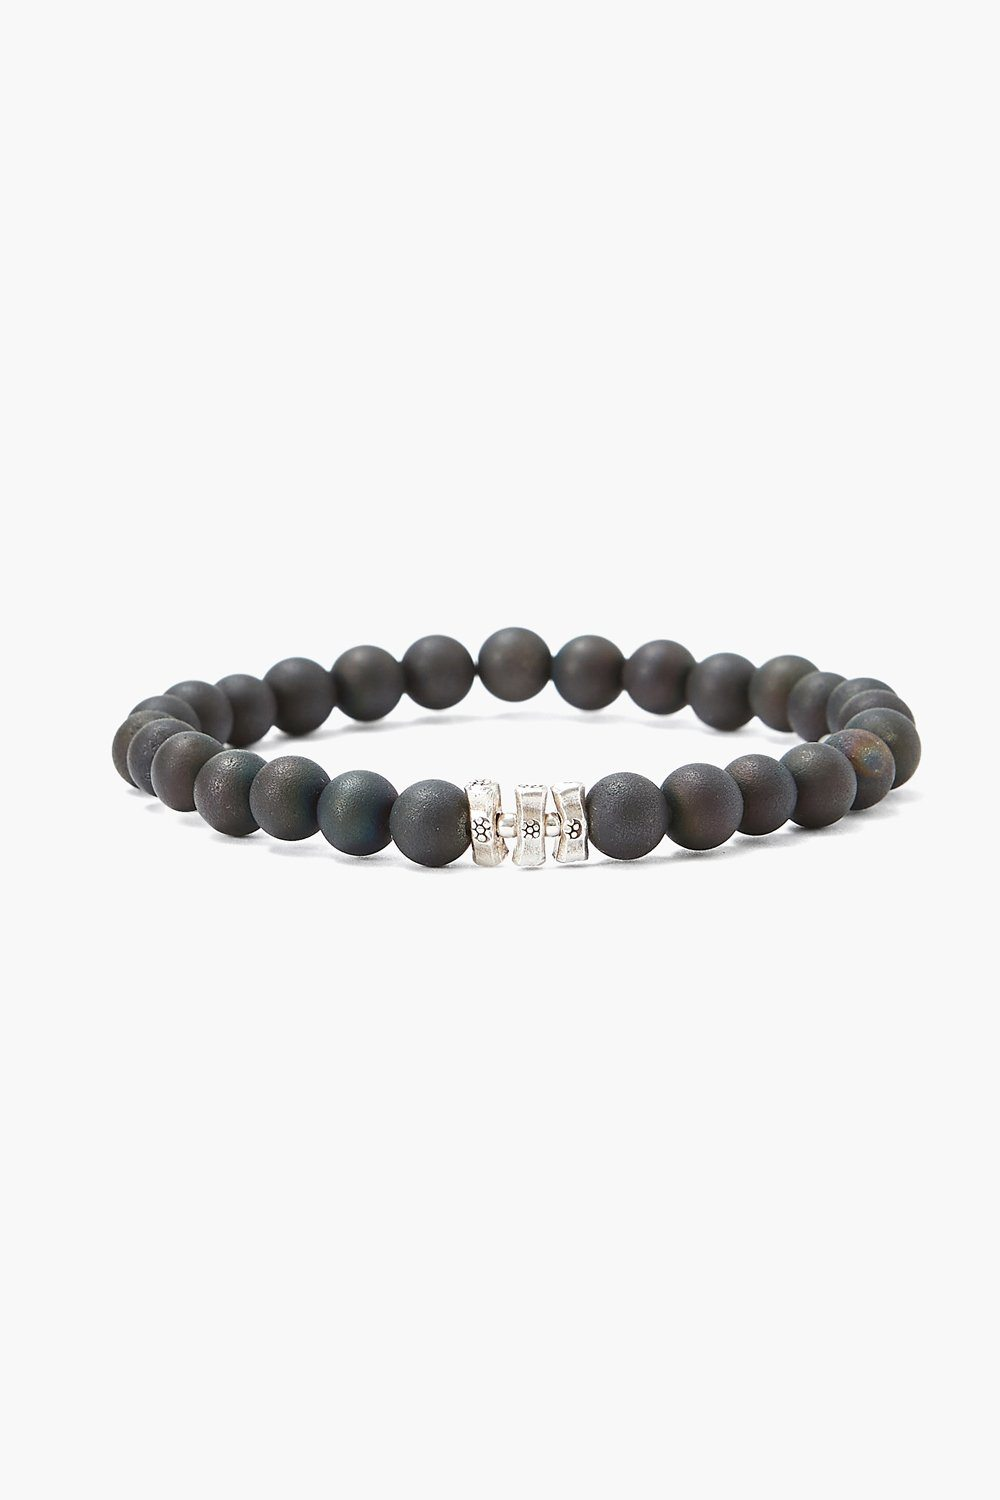 Black Druzy Agate and Etched Silver Stretch Bracelet